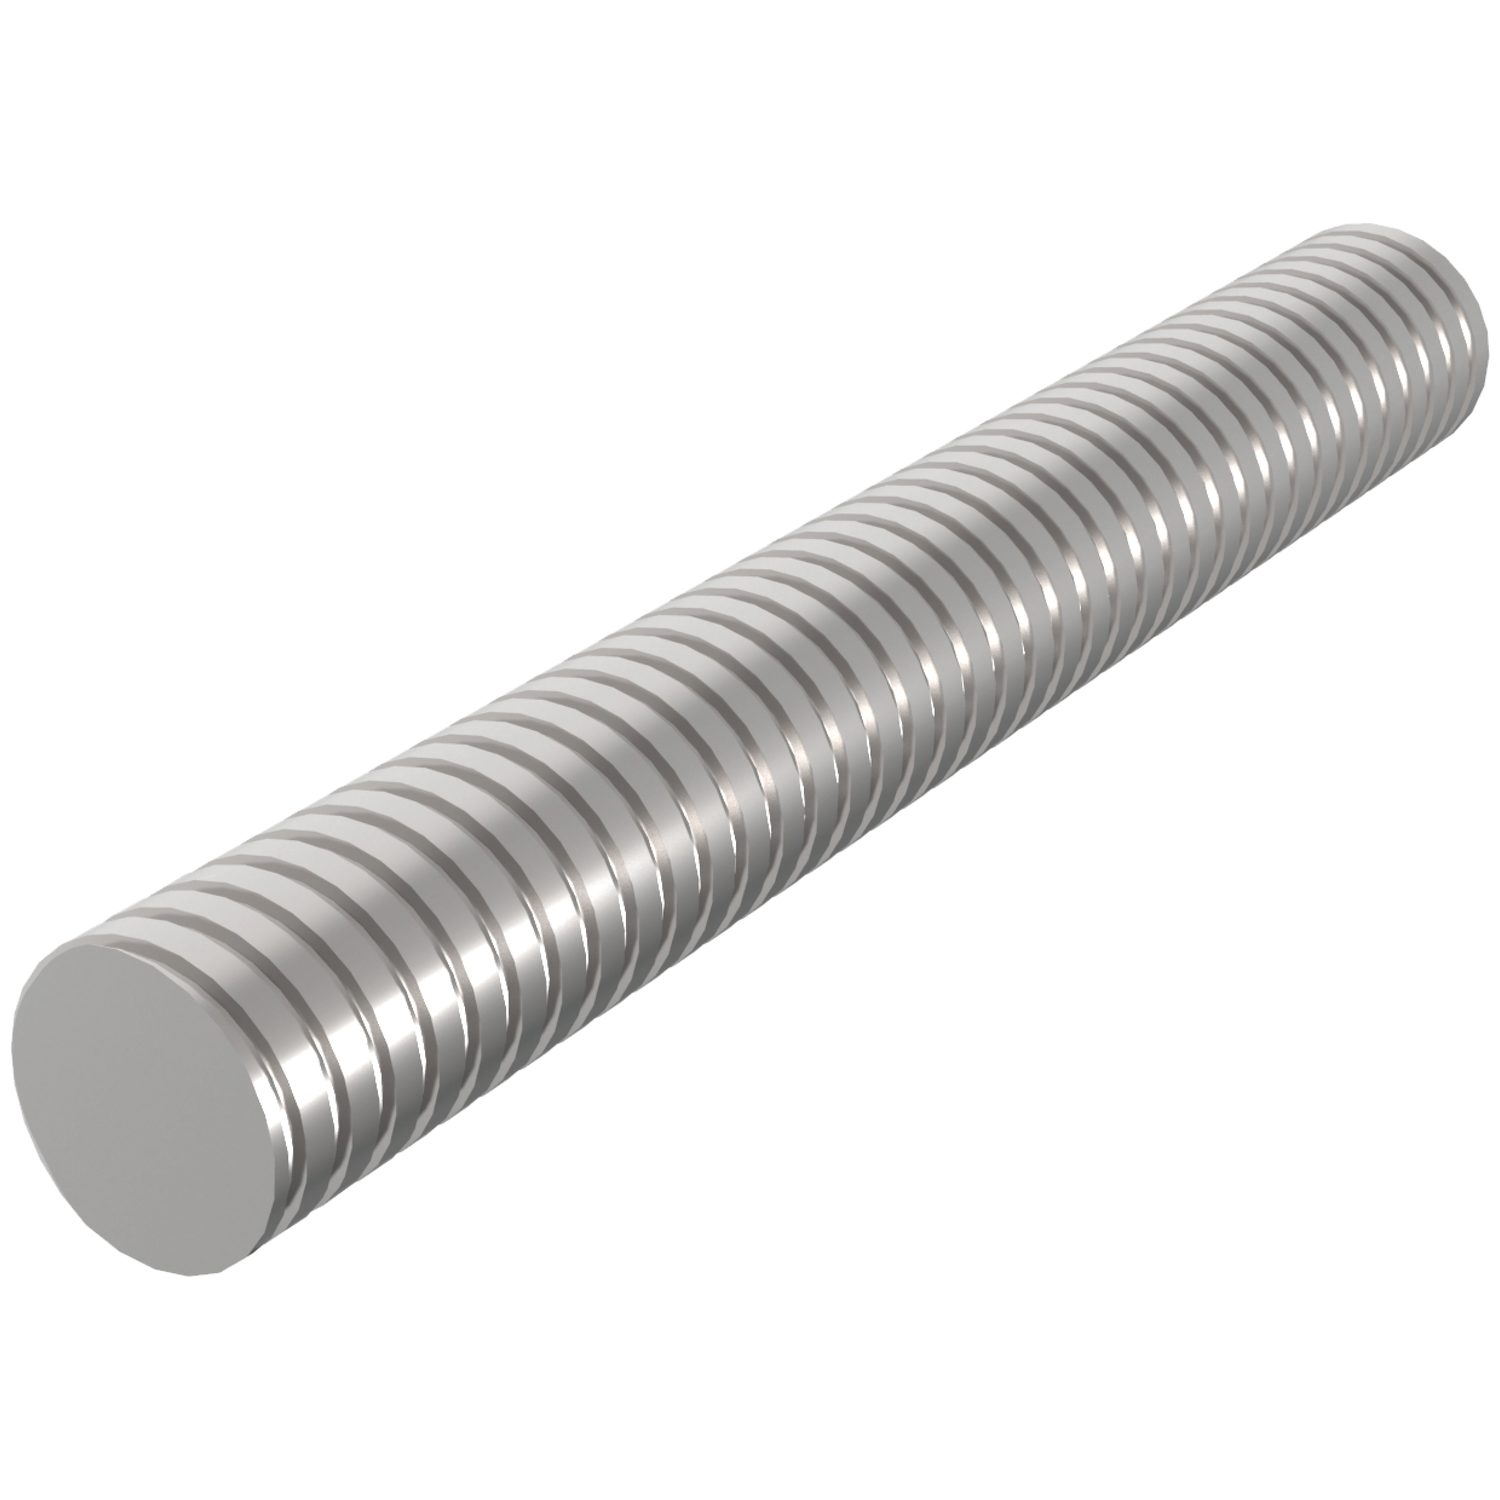 Product L1320, Steel Lead Screws right hand thread /